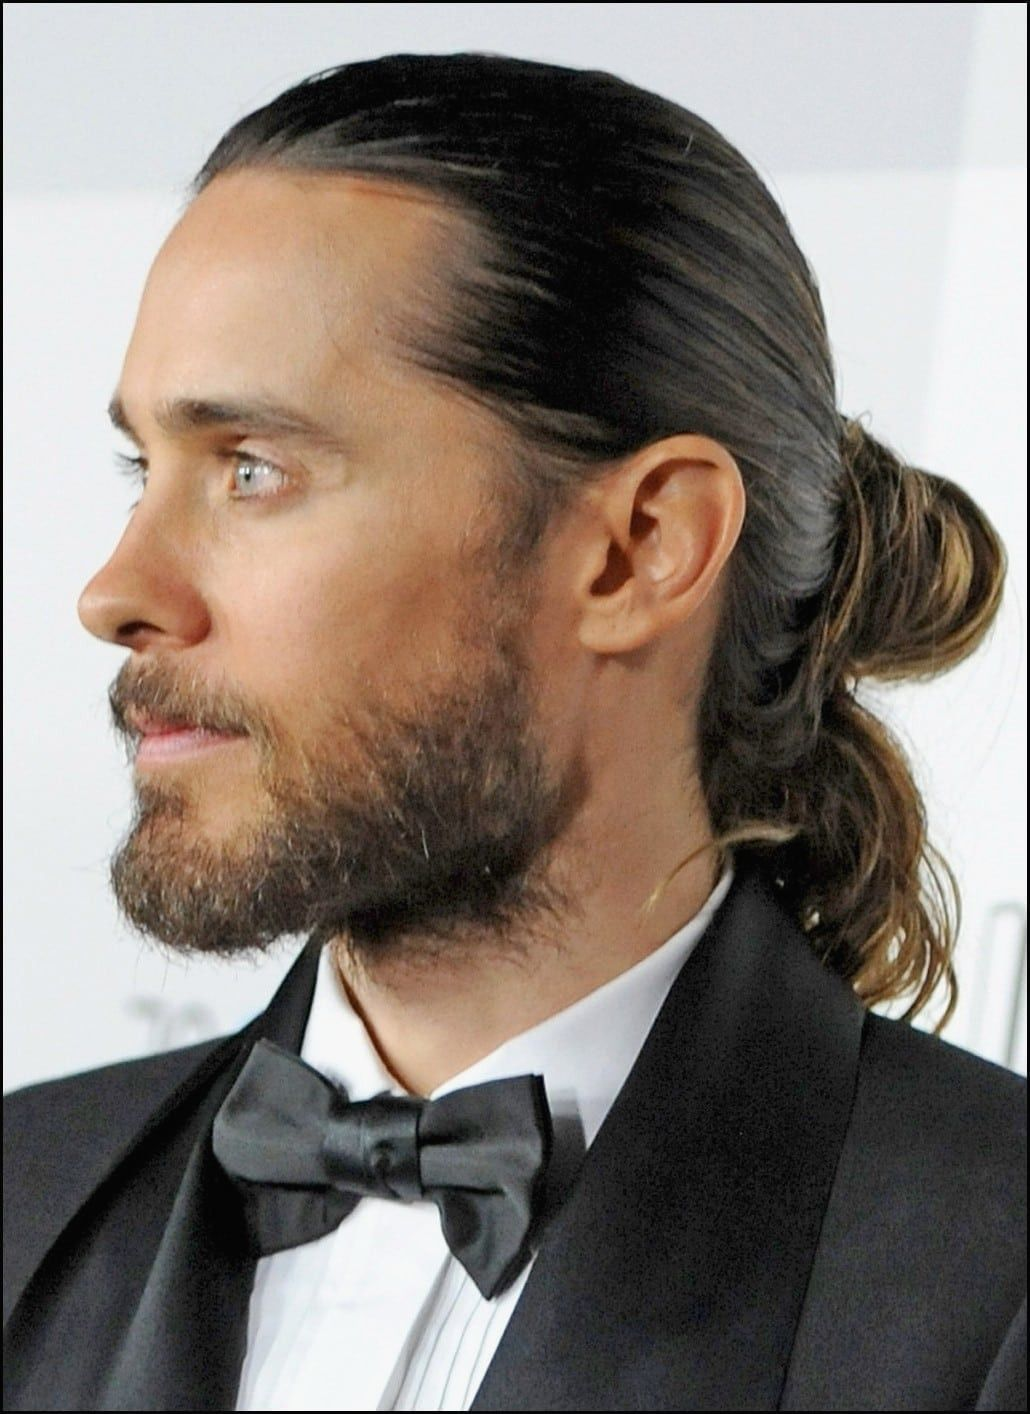 Trend Frisuren Männer Hohe Stirn  New men hairstyles, Long hair